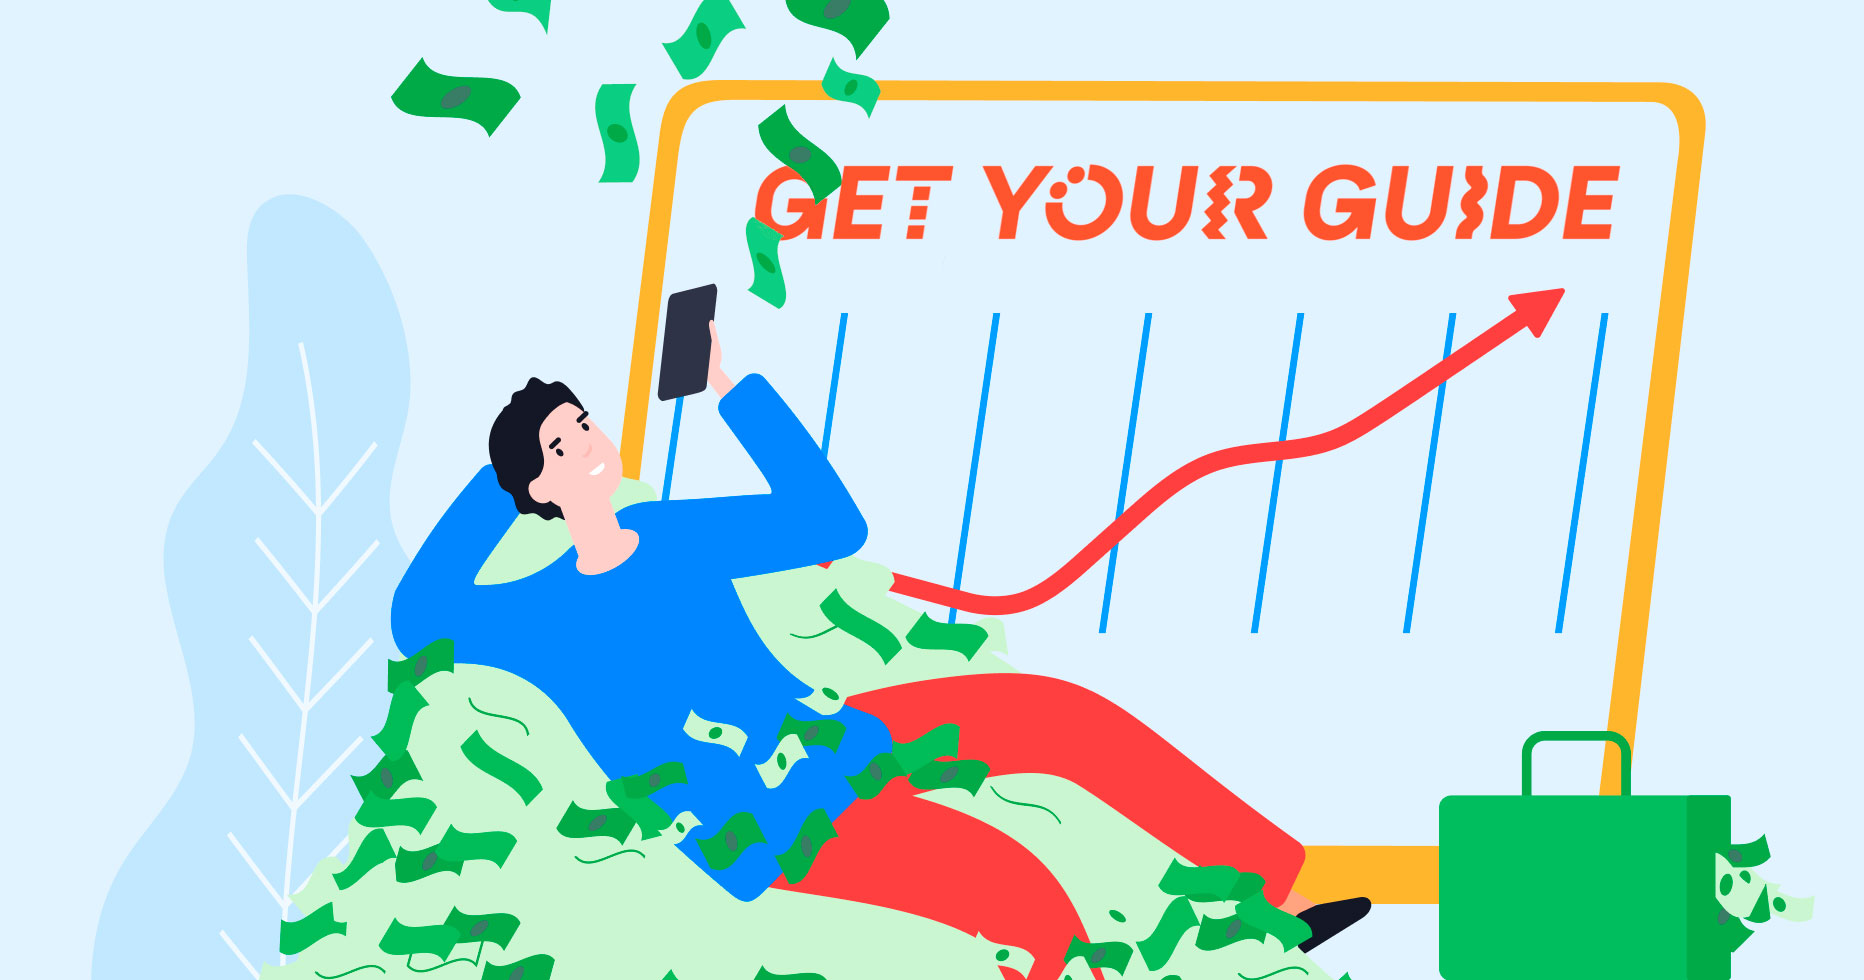 GetYourGuide increases commission for 3 months